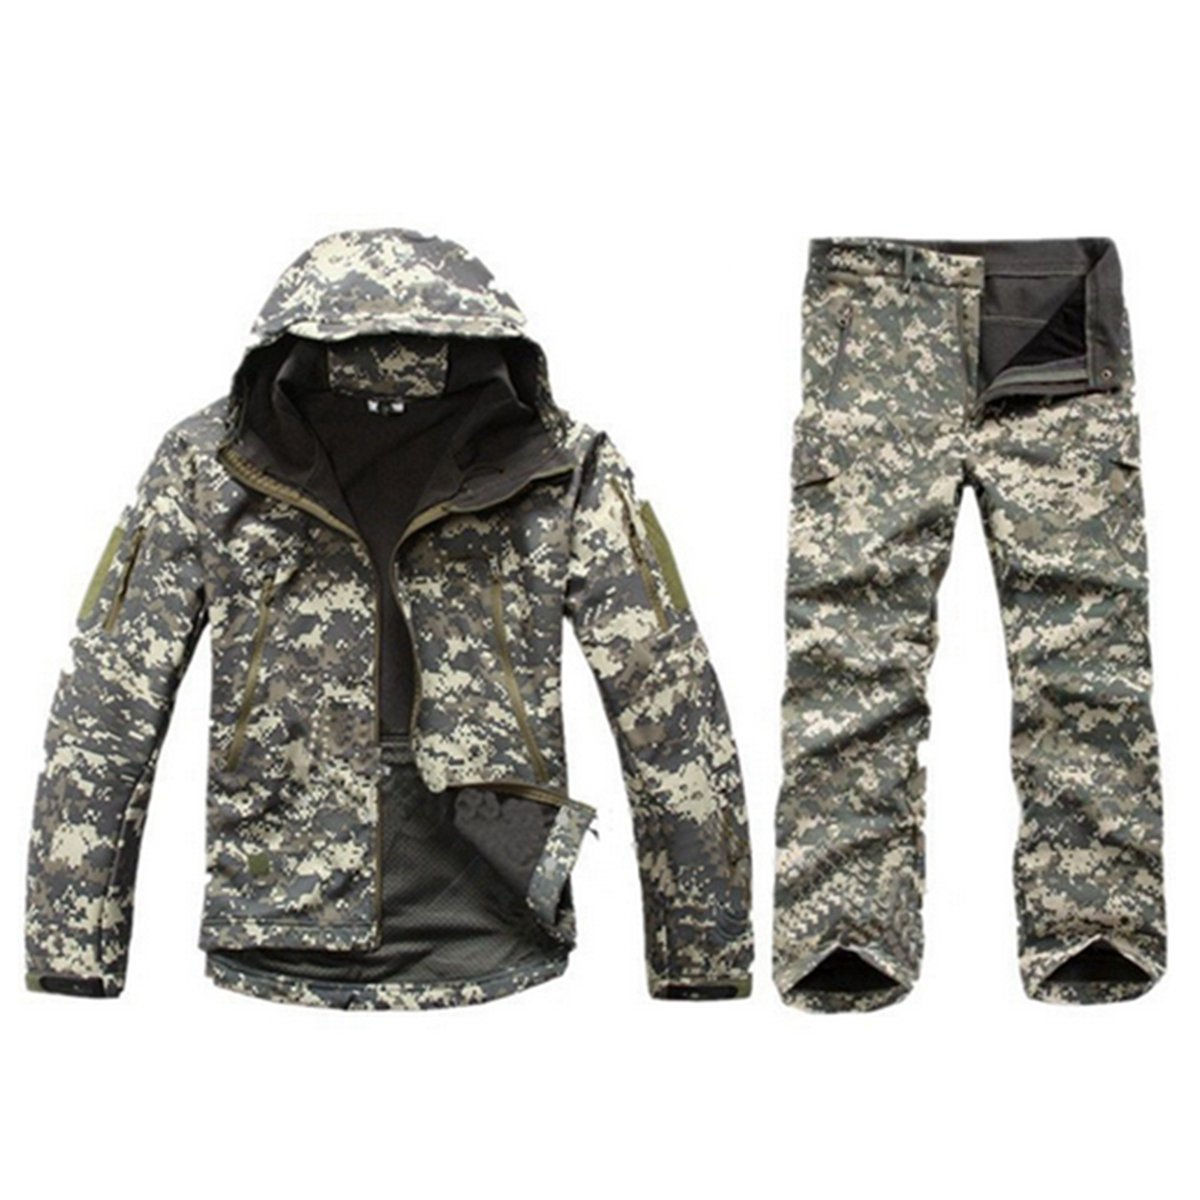 YoYo_Boy Winter Autumn Waterproof Softshell Jacket Men Tactical Camouflage Jacket Coat Camo Military Clothes ACU S